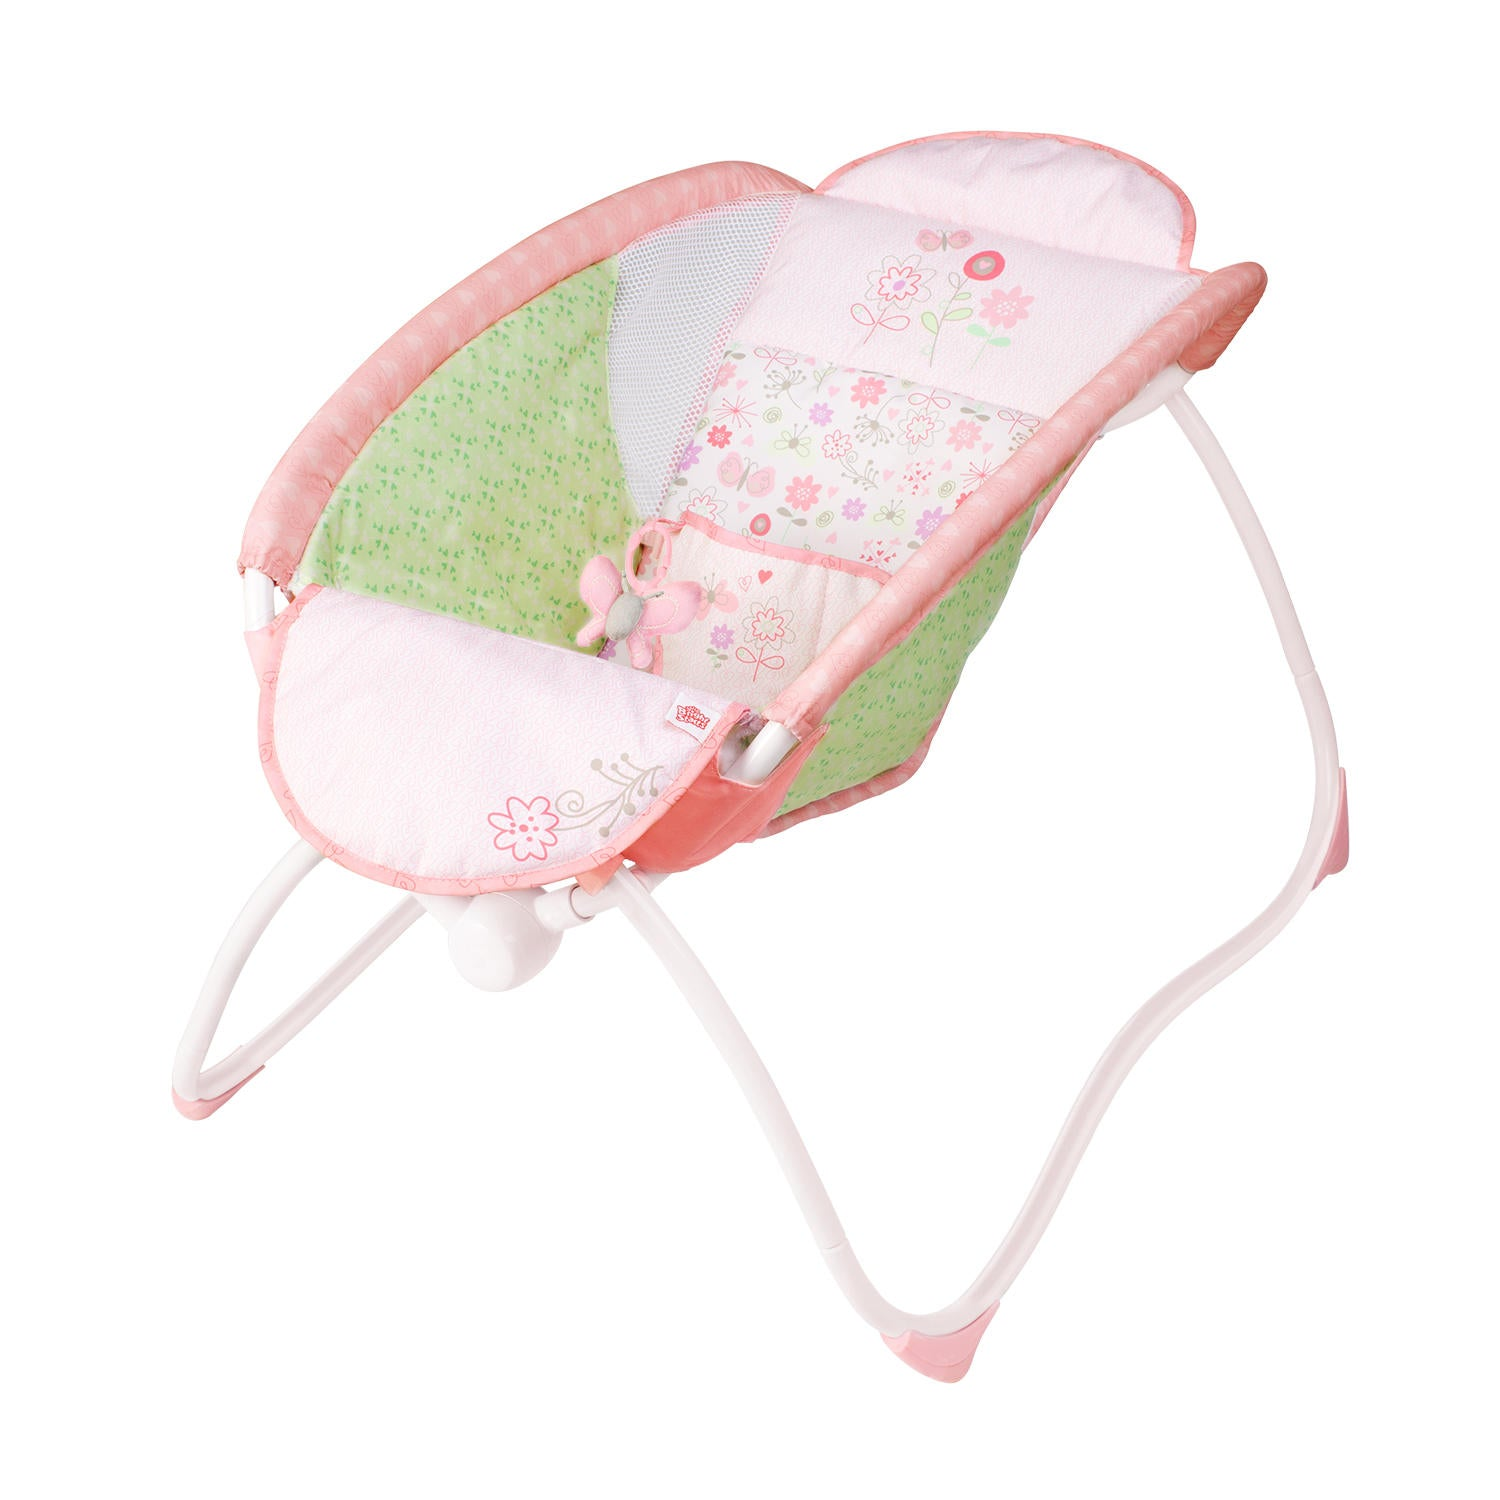 Bright Starts Pretty In Pink Playtime To Bedtime Sleeper - Model 60163